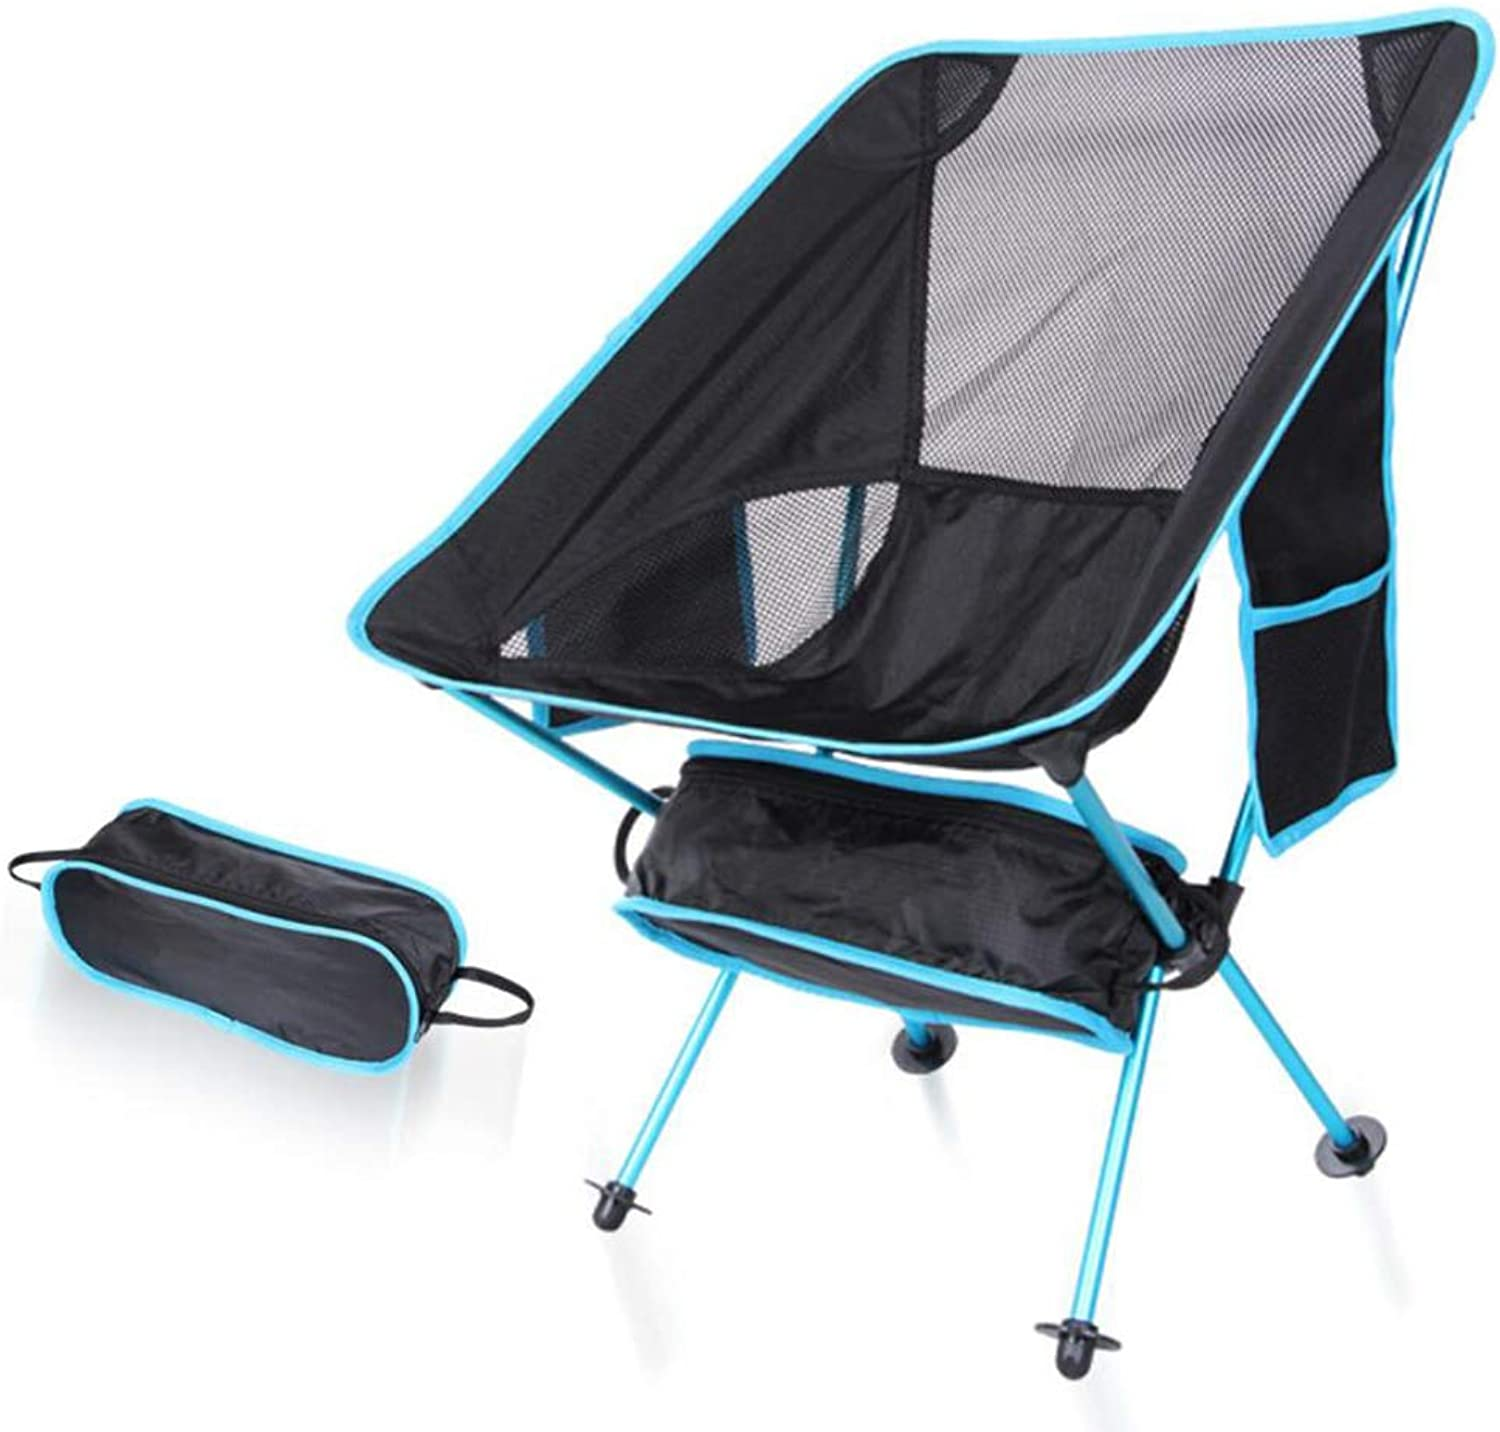 Camping Chair Outside Folding Portable Super Light Moon Chair Aviation Aluminum Fishing Mountaineering Camping Beach Chair + Side Pocket Design